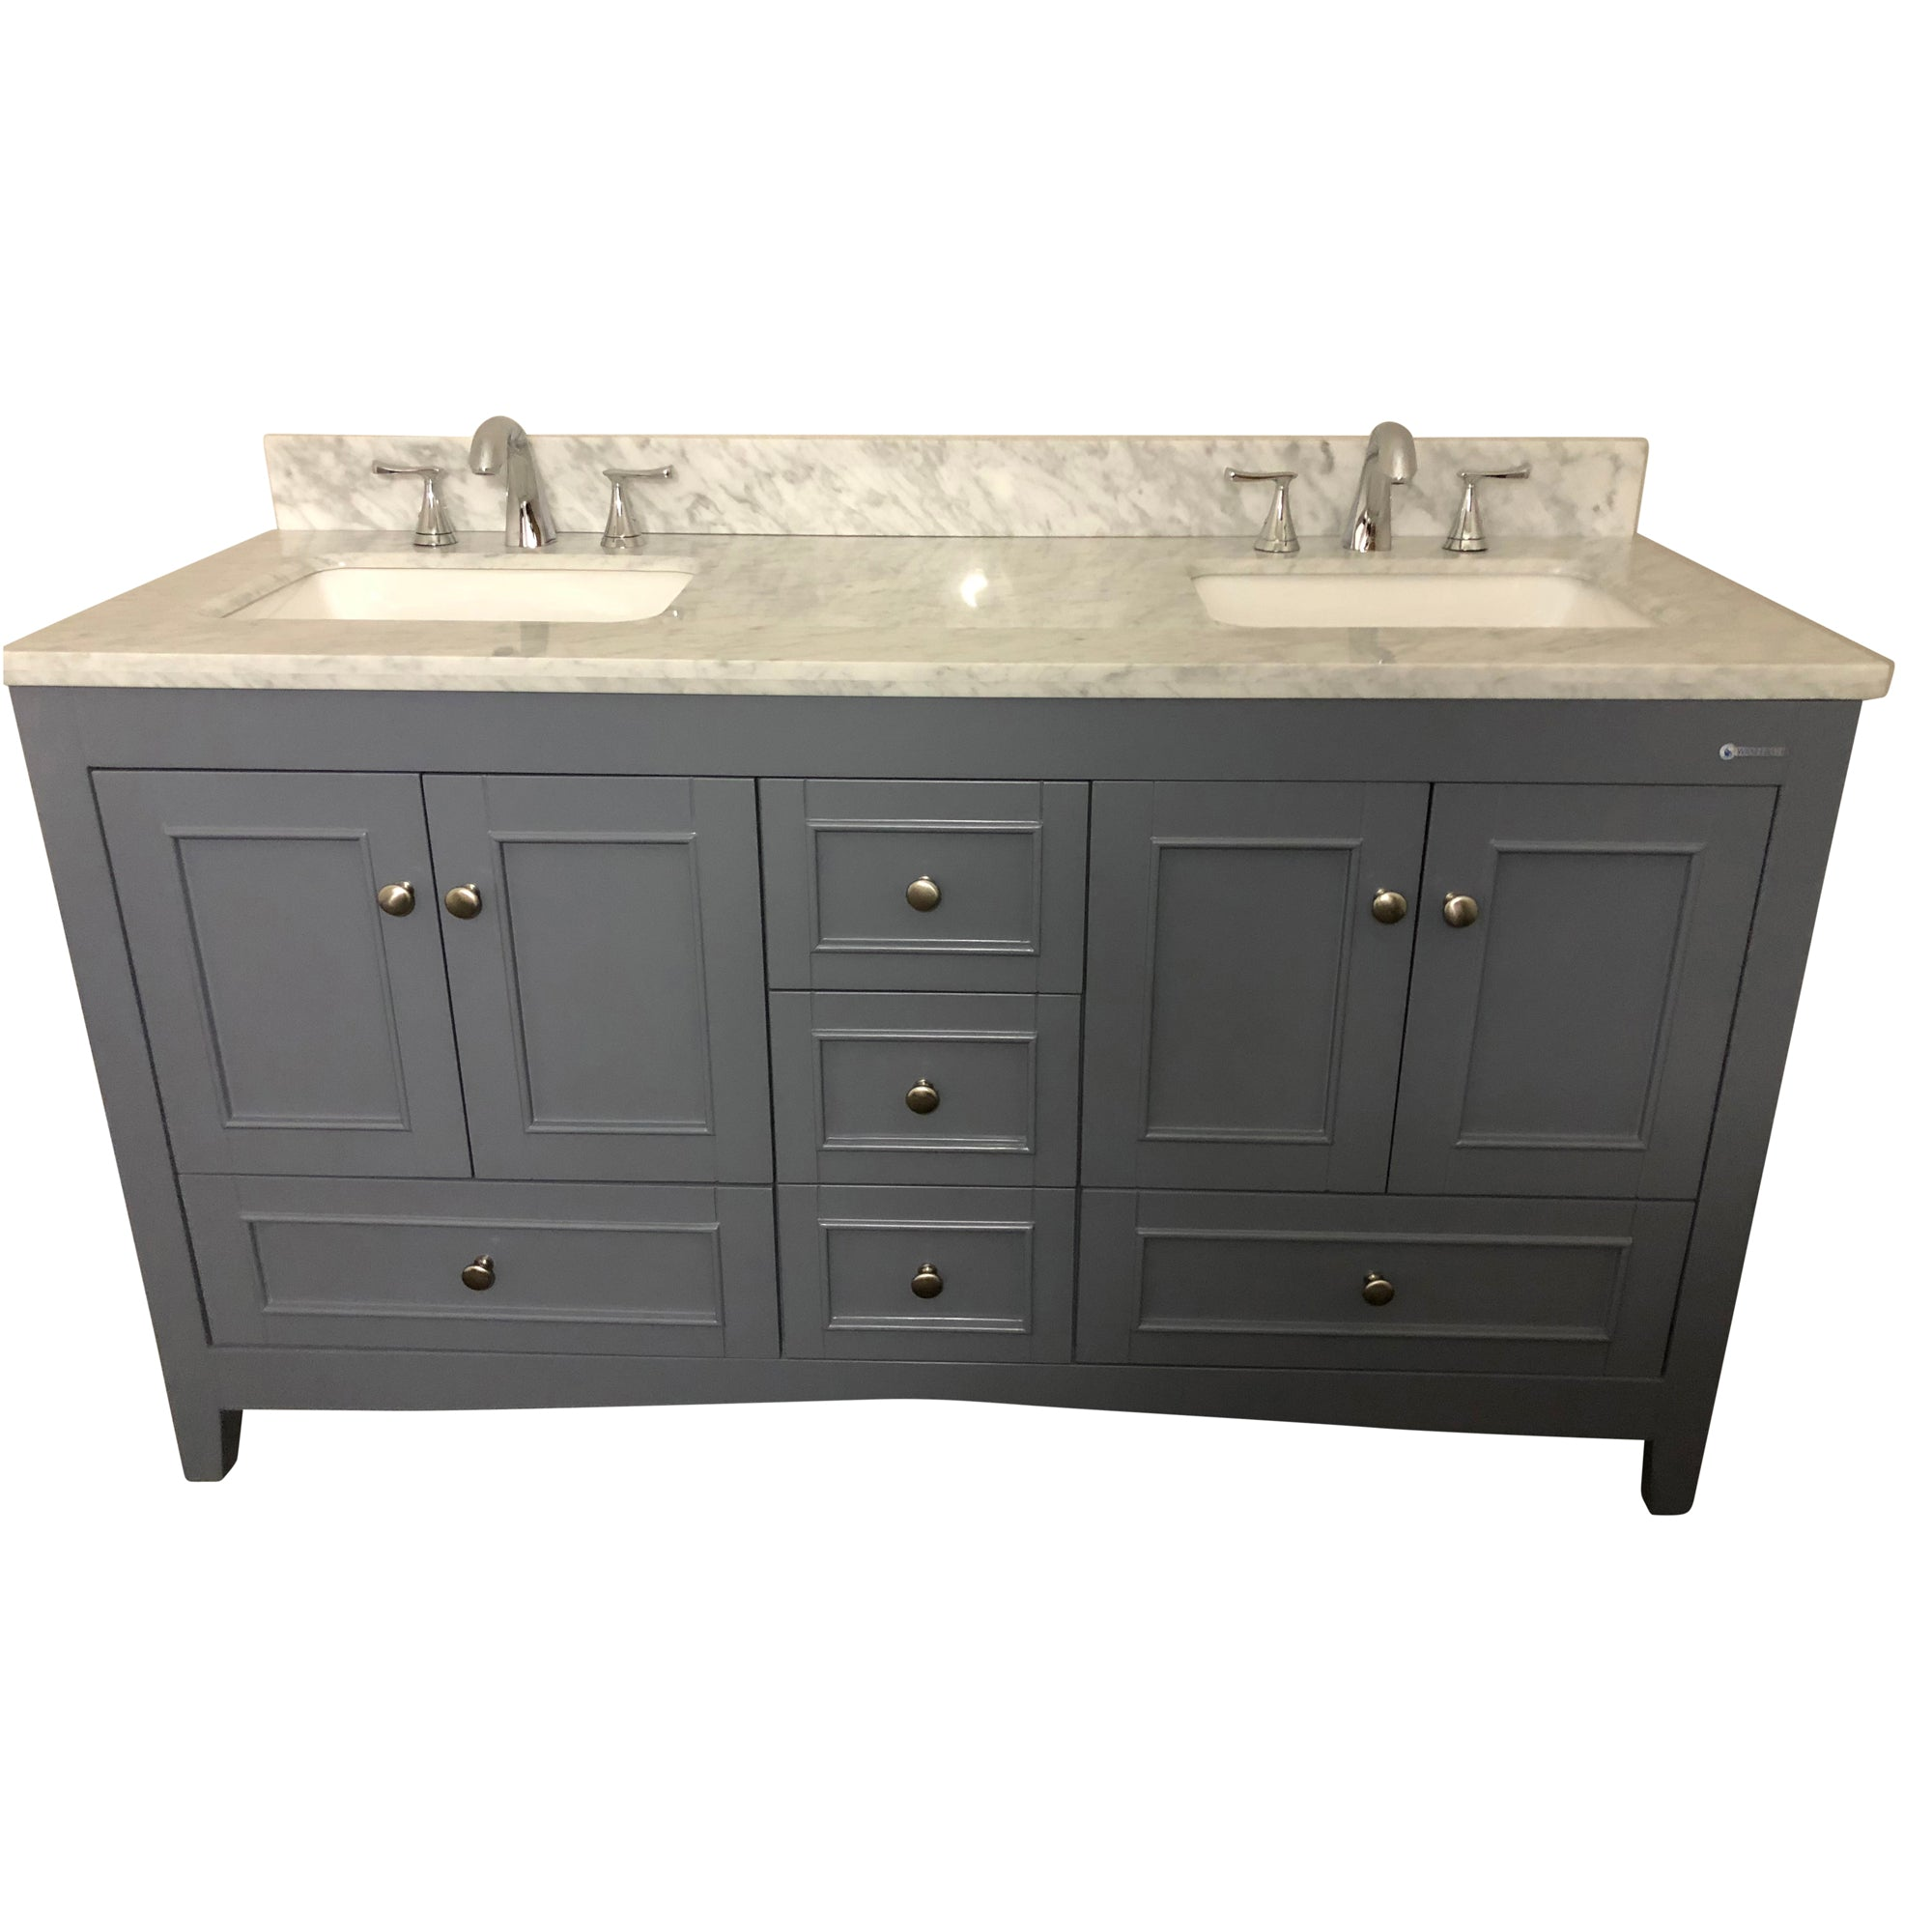 top com vanities beauteous vanity sink bathroom maidanchronicles single inch with bath